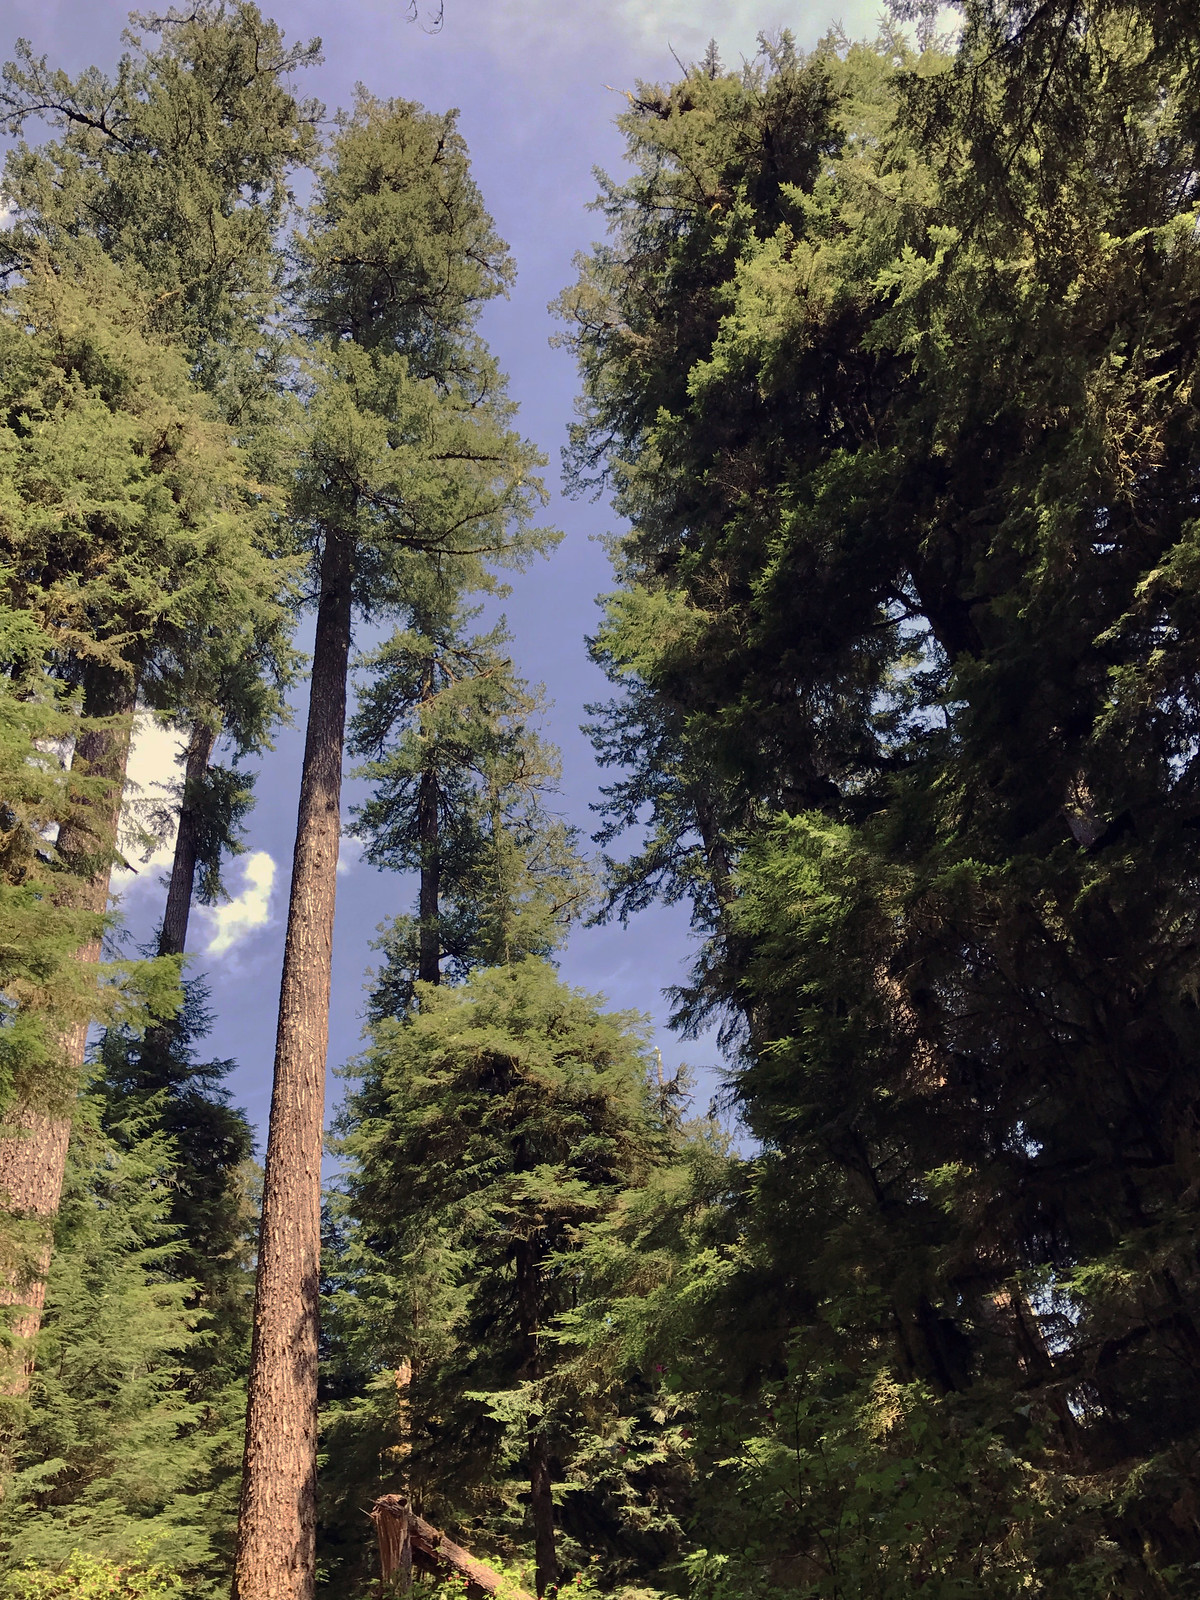 Tall trees on display in the Valley of the Giants.